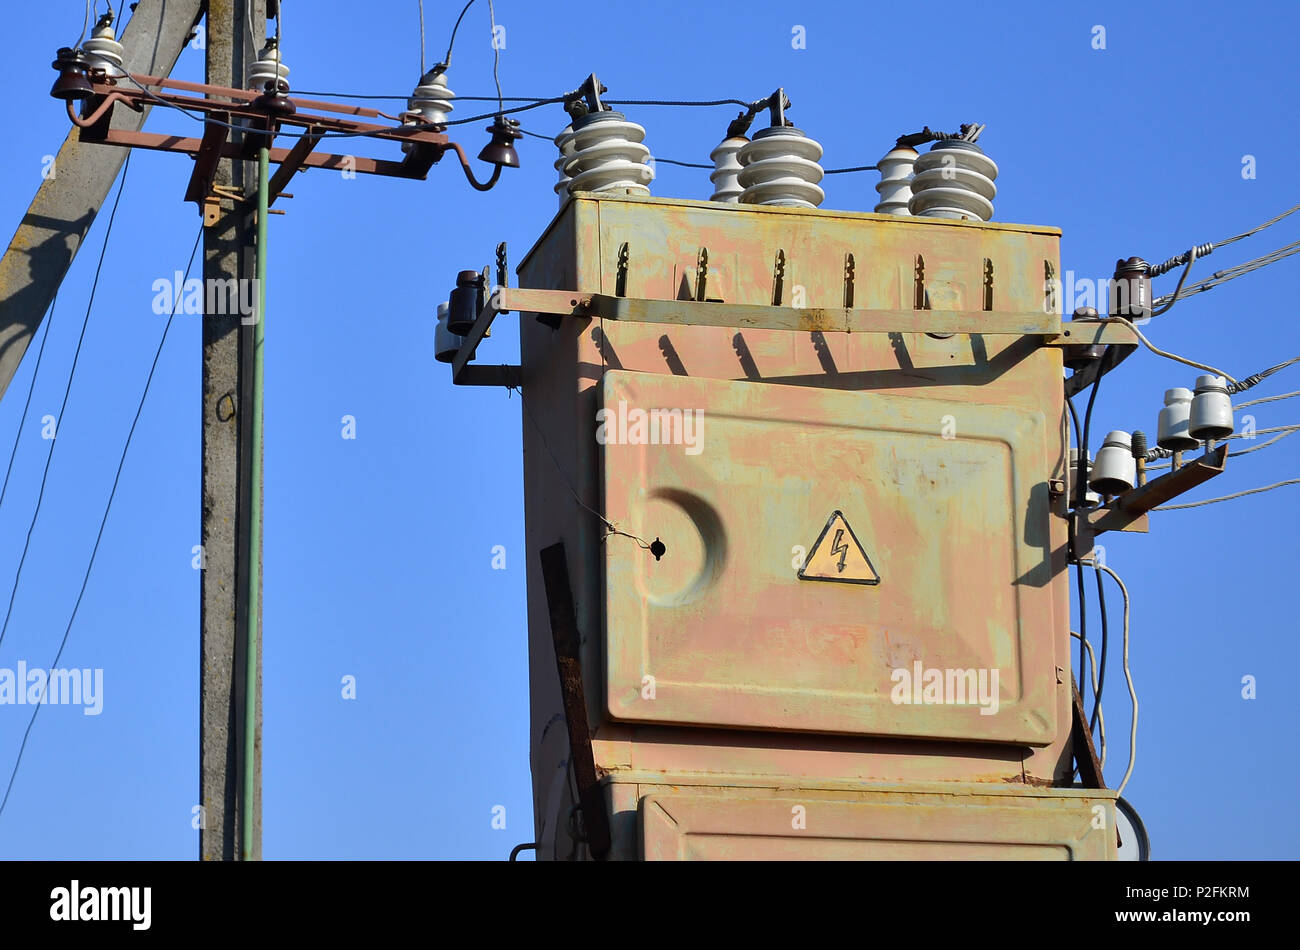 hight resolution of old and obsolete electrical transformer against the background of a cloudless blue sky device for distribution of supply of high voltage energy